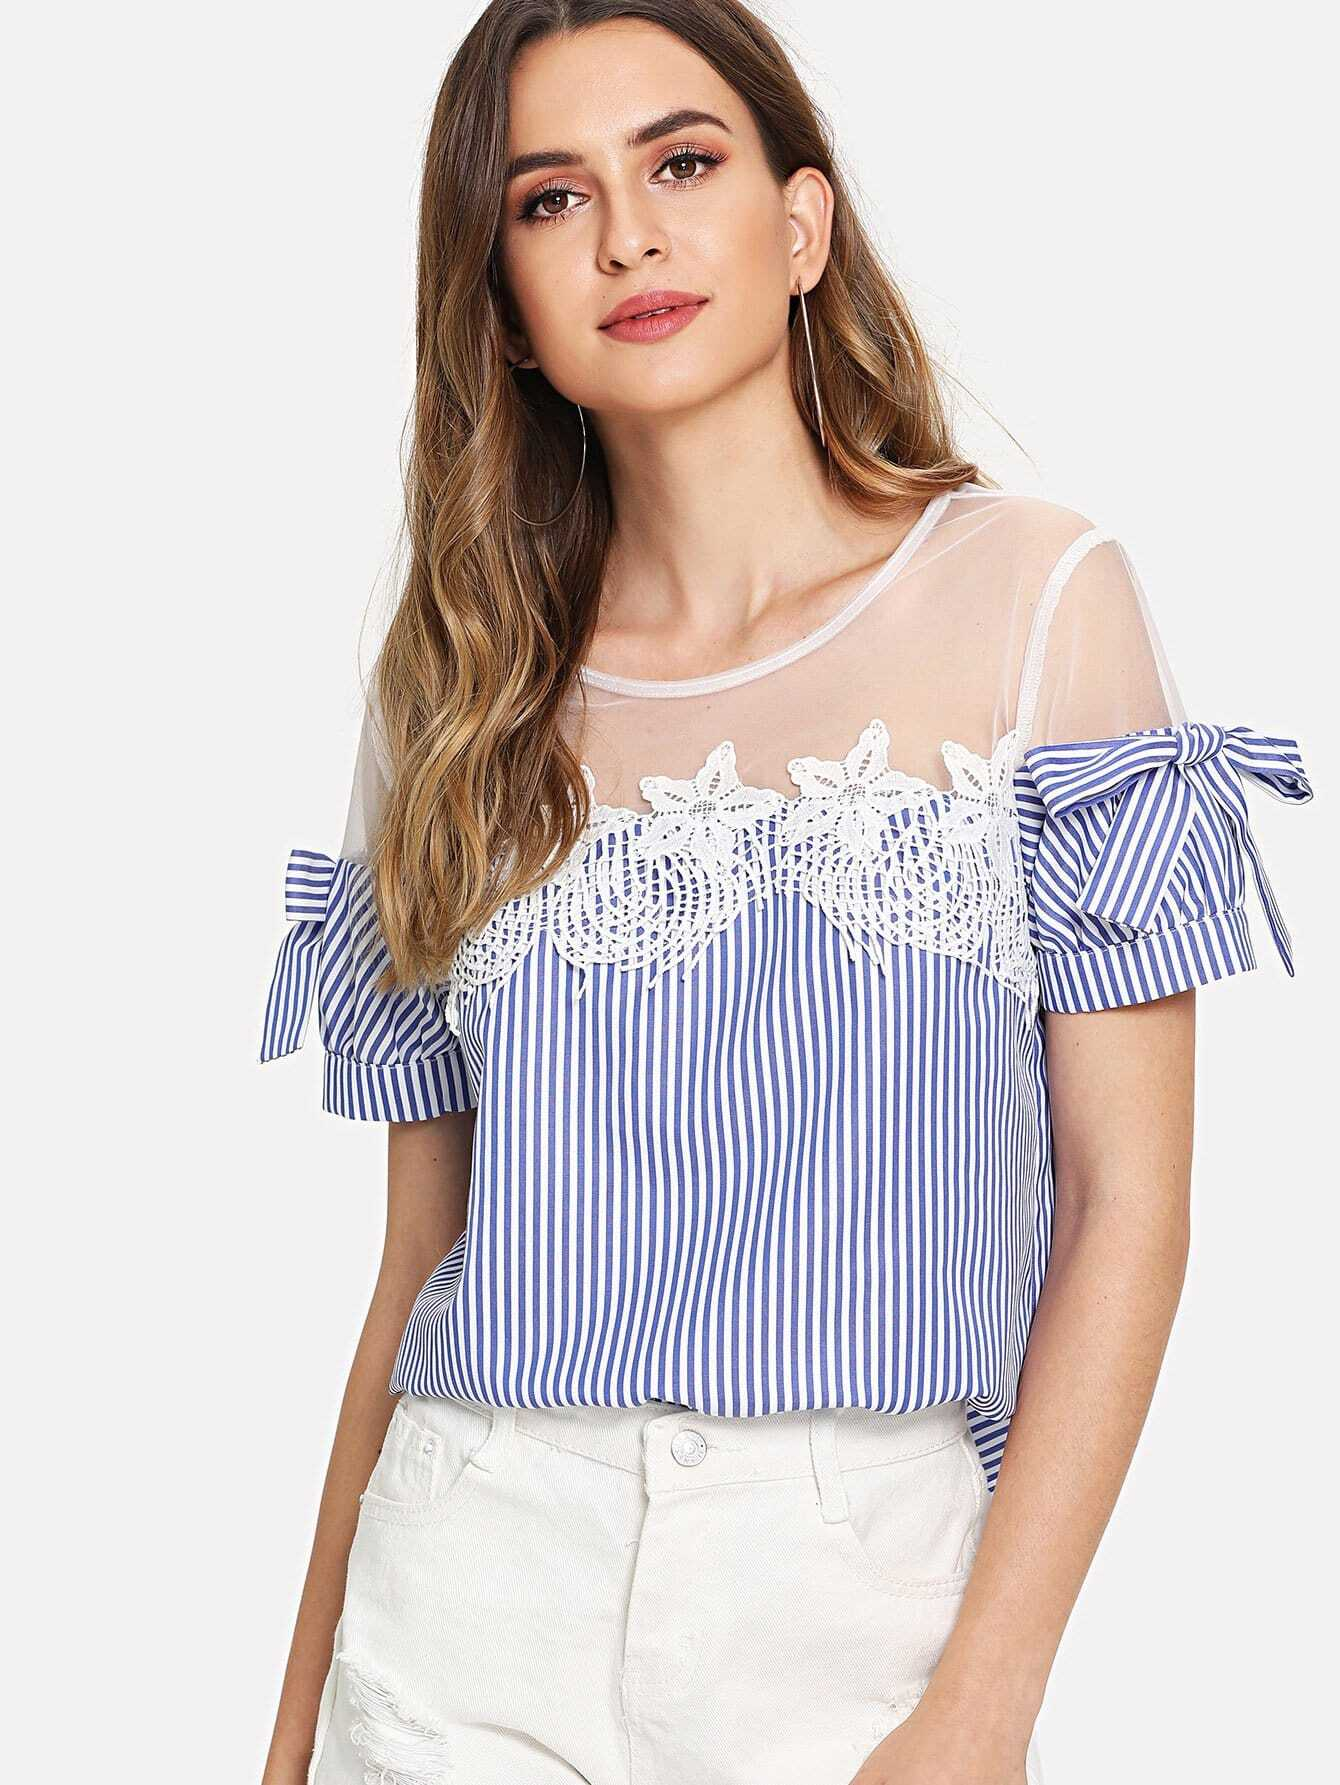 Mesh Shoulder Lace Applique Bow Detail Striped Top mesh shoulder lace applique bow detail striped top